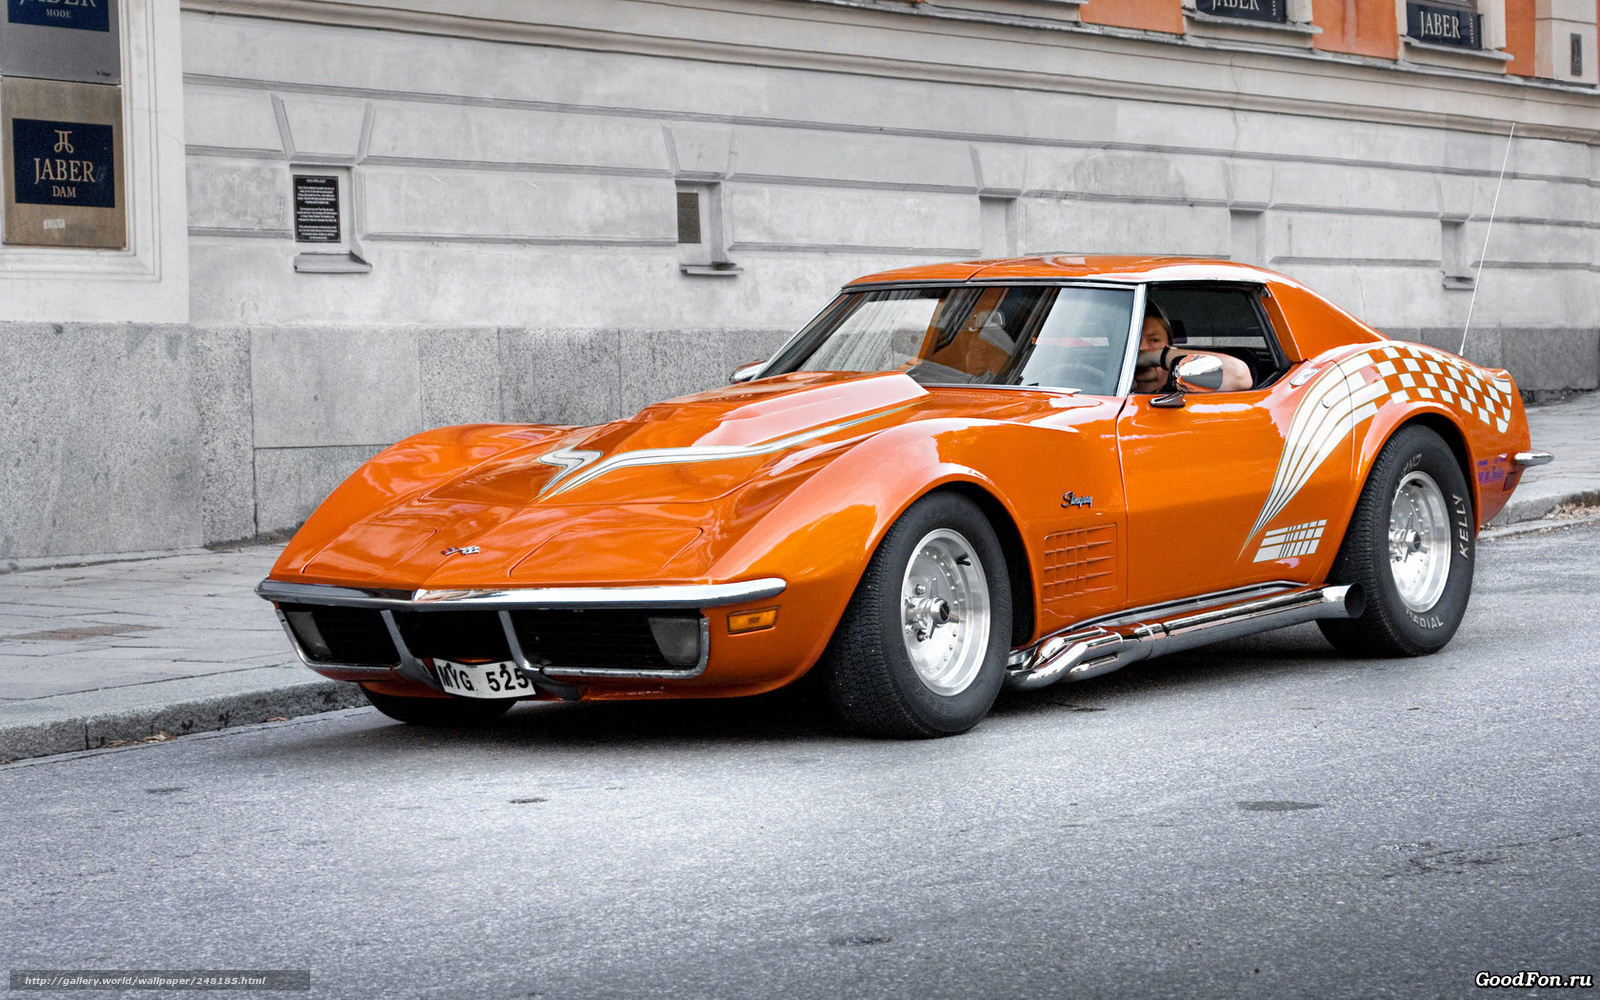 Chevy Muscle Car Wallpaper: Pin By Gina Baldwin On Rides